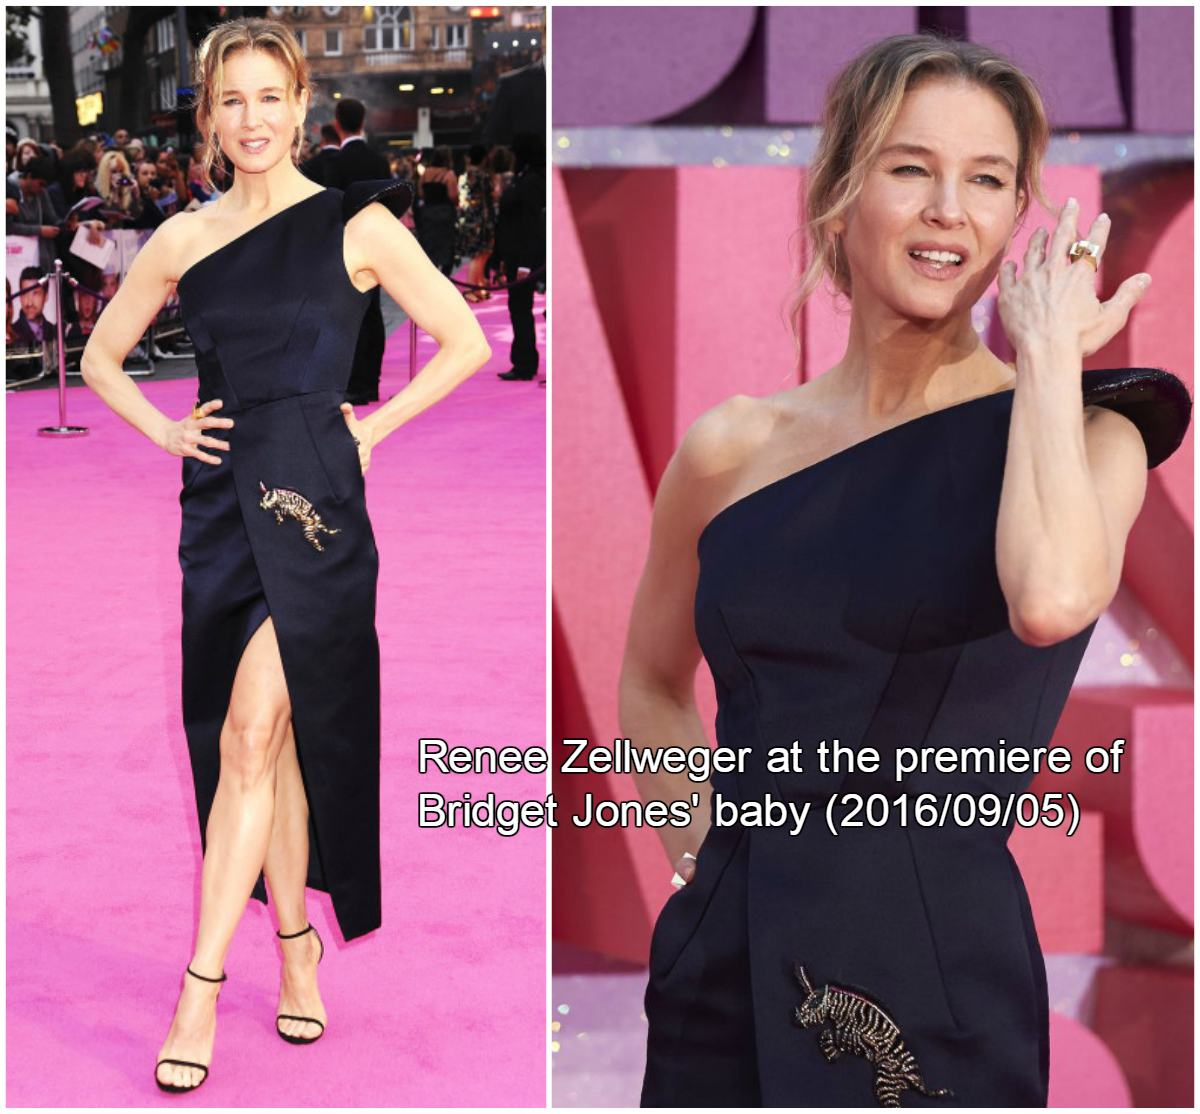 Renee Zellweger is in great shape at 'Bridget Jones' Baby' Premiere 9/5/2016